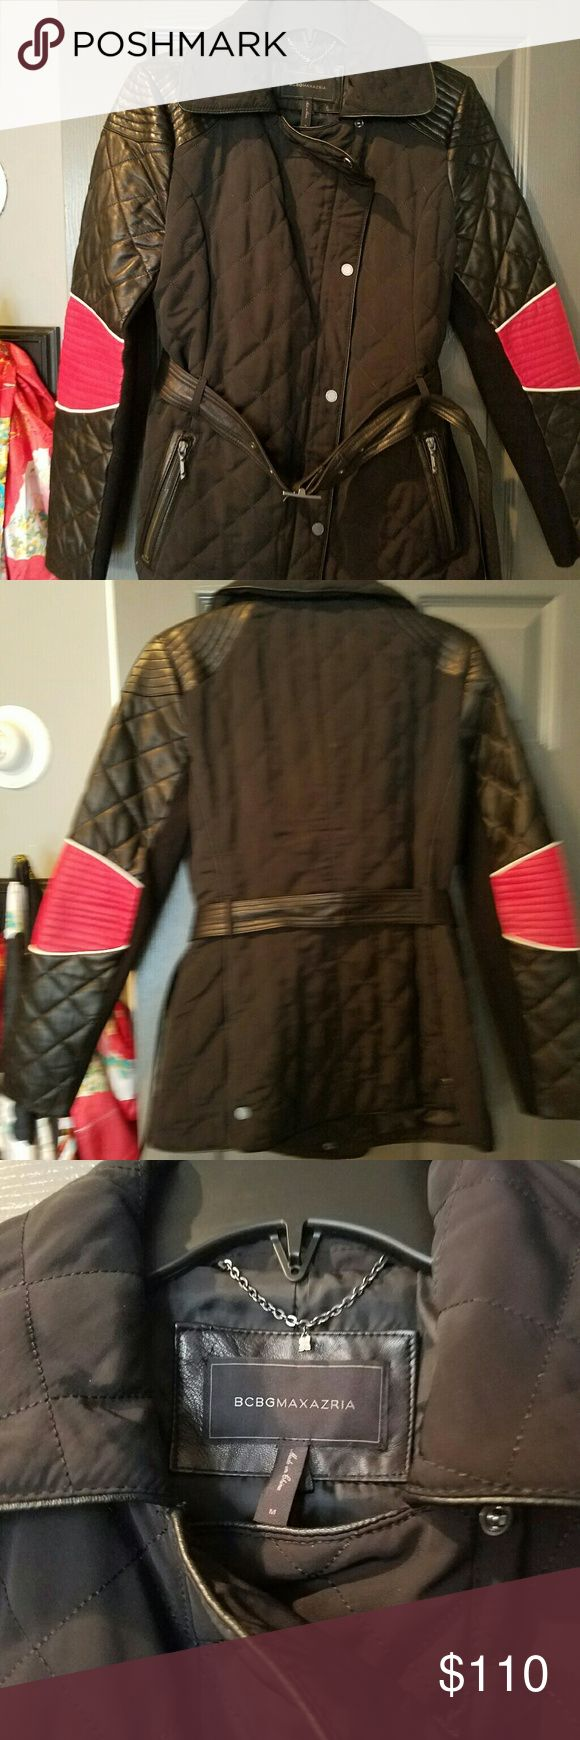 Jacket It is a quilted BCBG jacket with faux leather sleeves faux leather trim and faux leather belt BCBGMaxAzria Jackets & Coats Utility Jackets